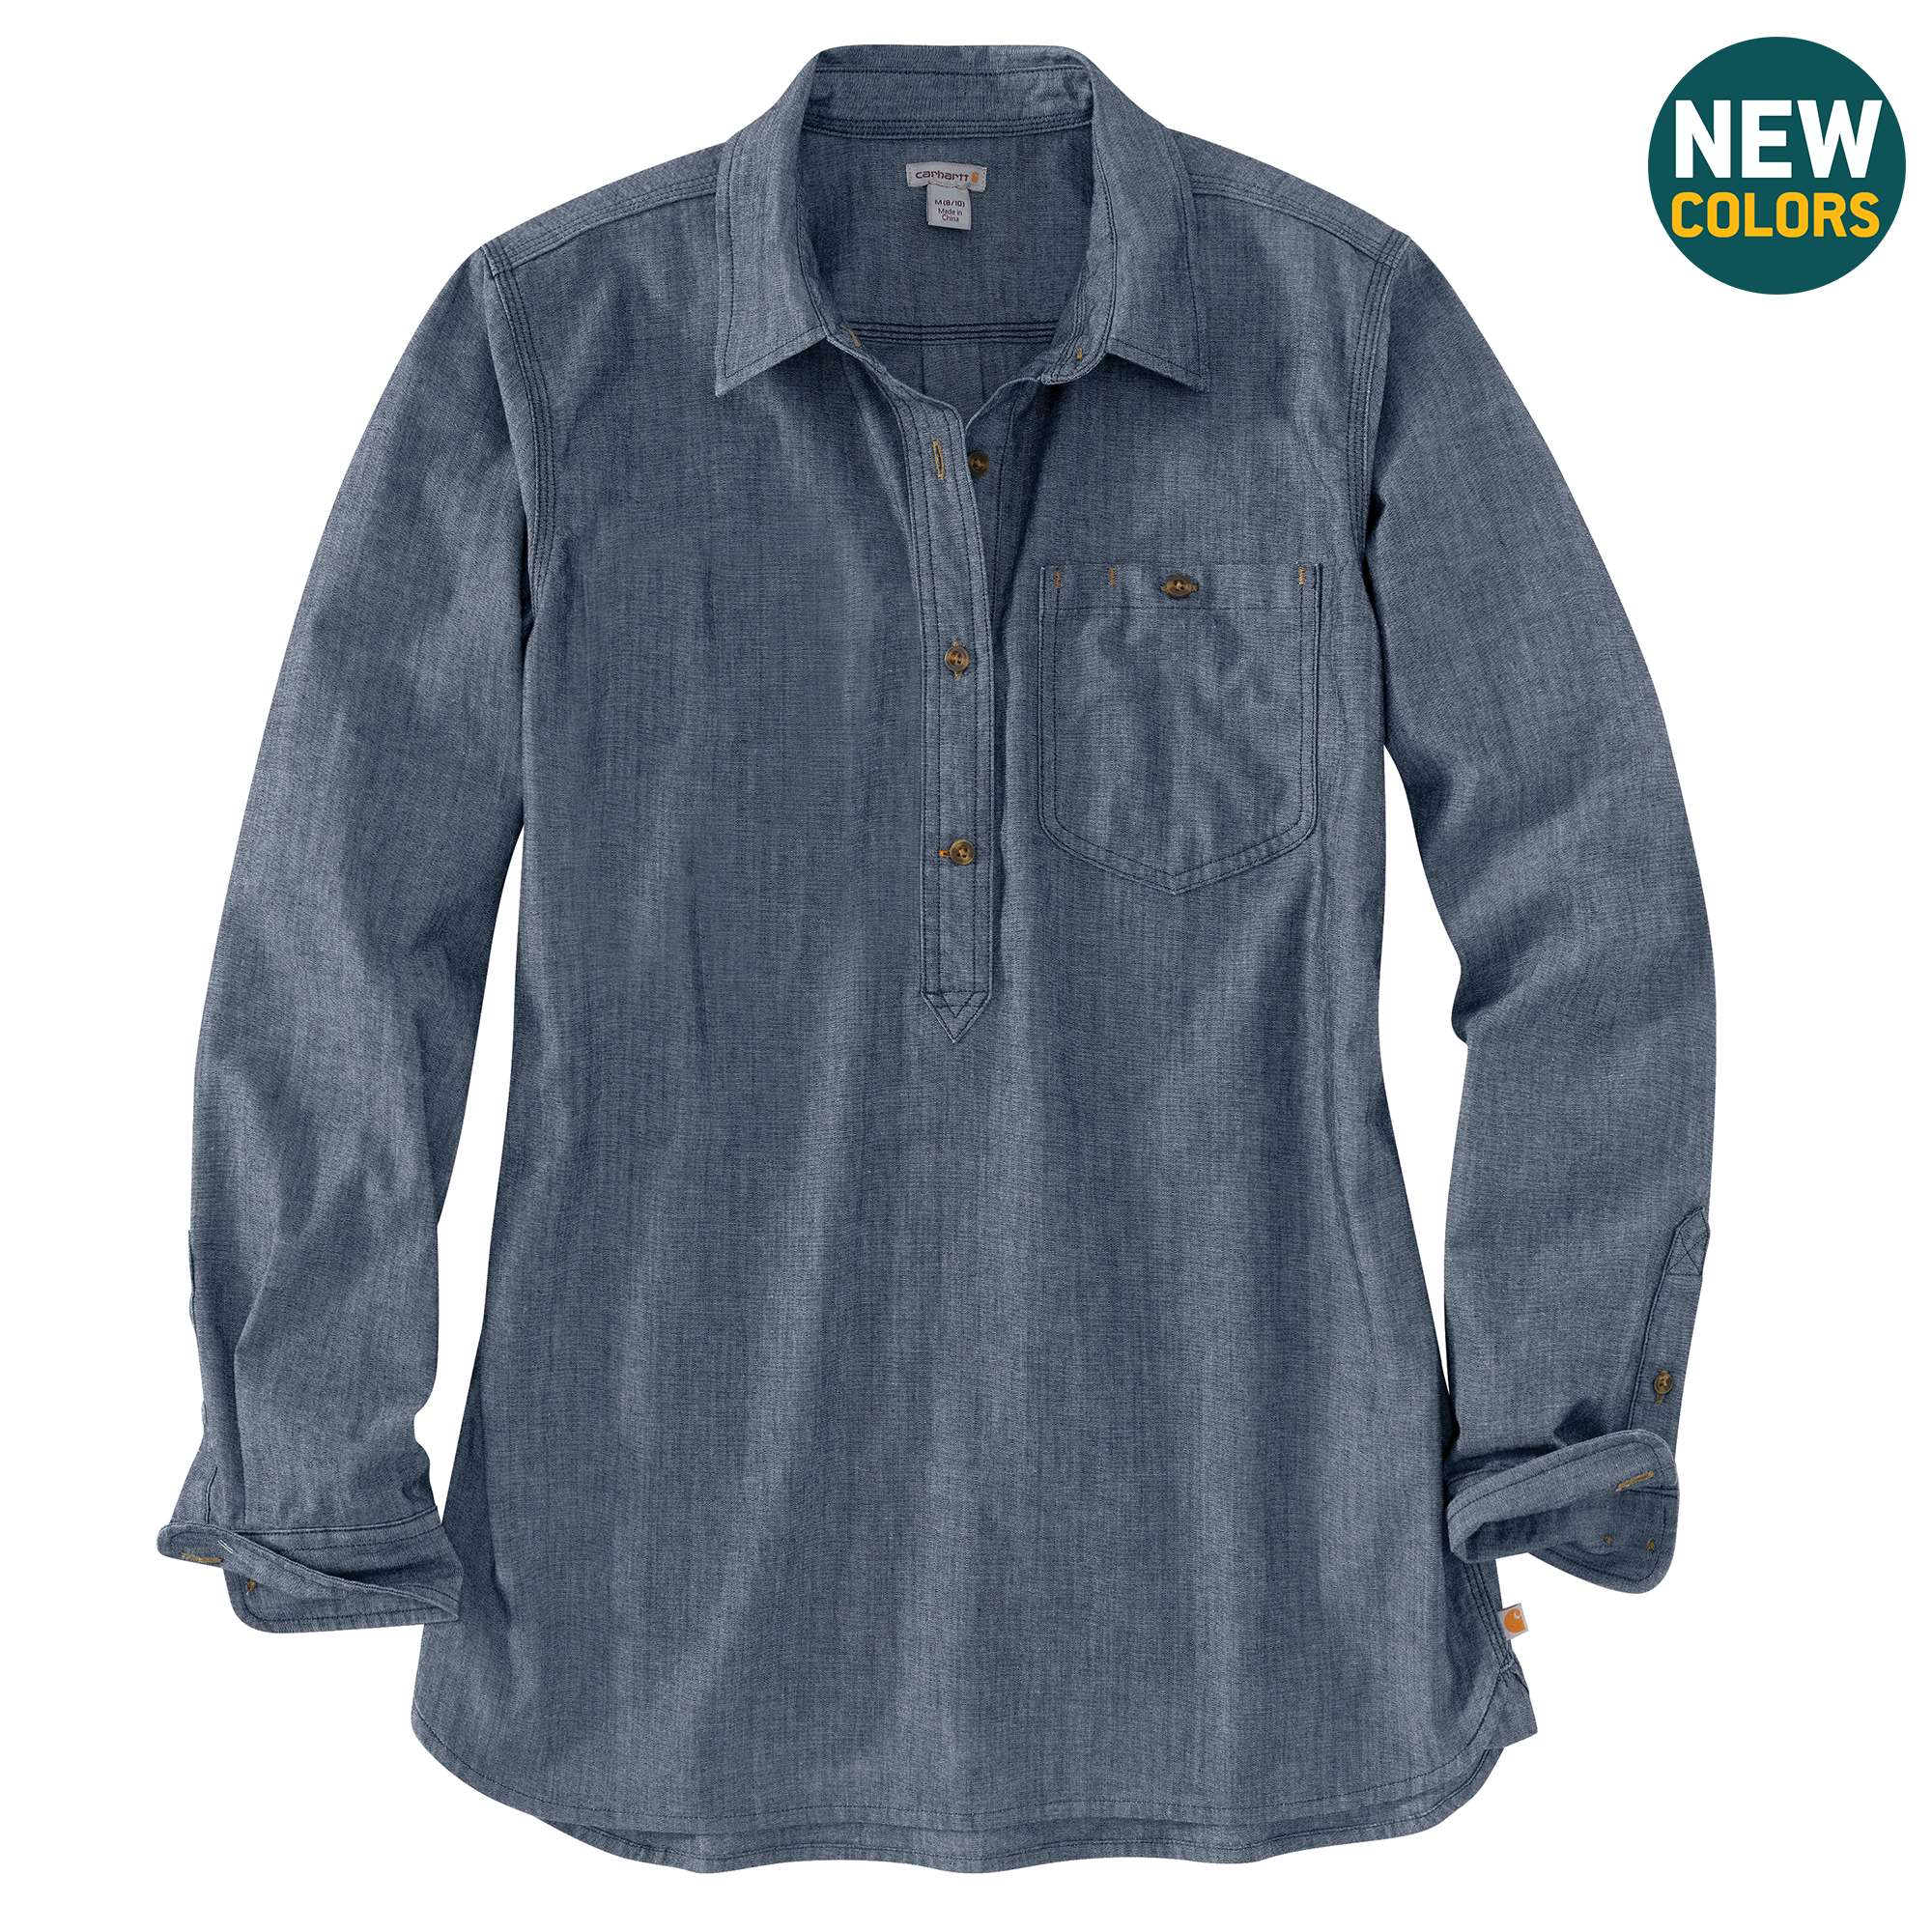 Rugged Flex Relaxed Fit Long-Sleeve Shirt